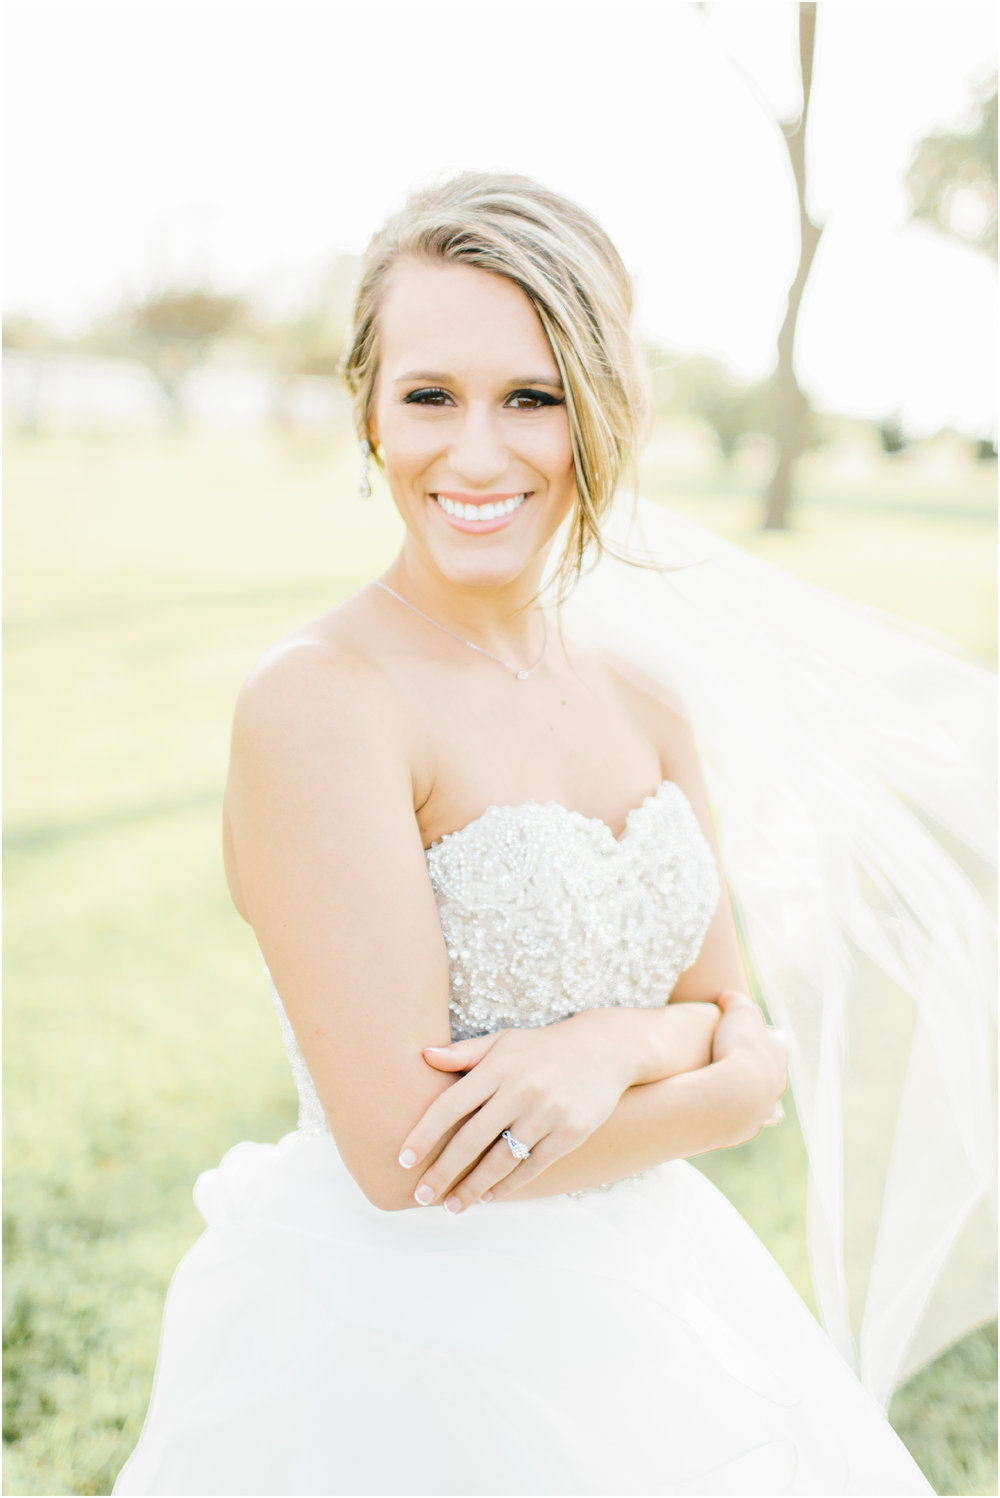 Natural_bridals_Grassy_field-3.jpg